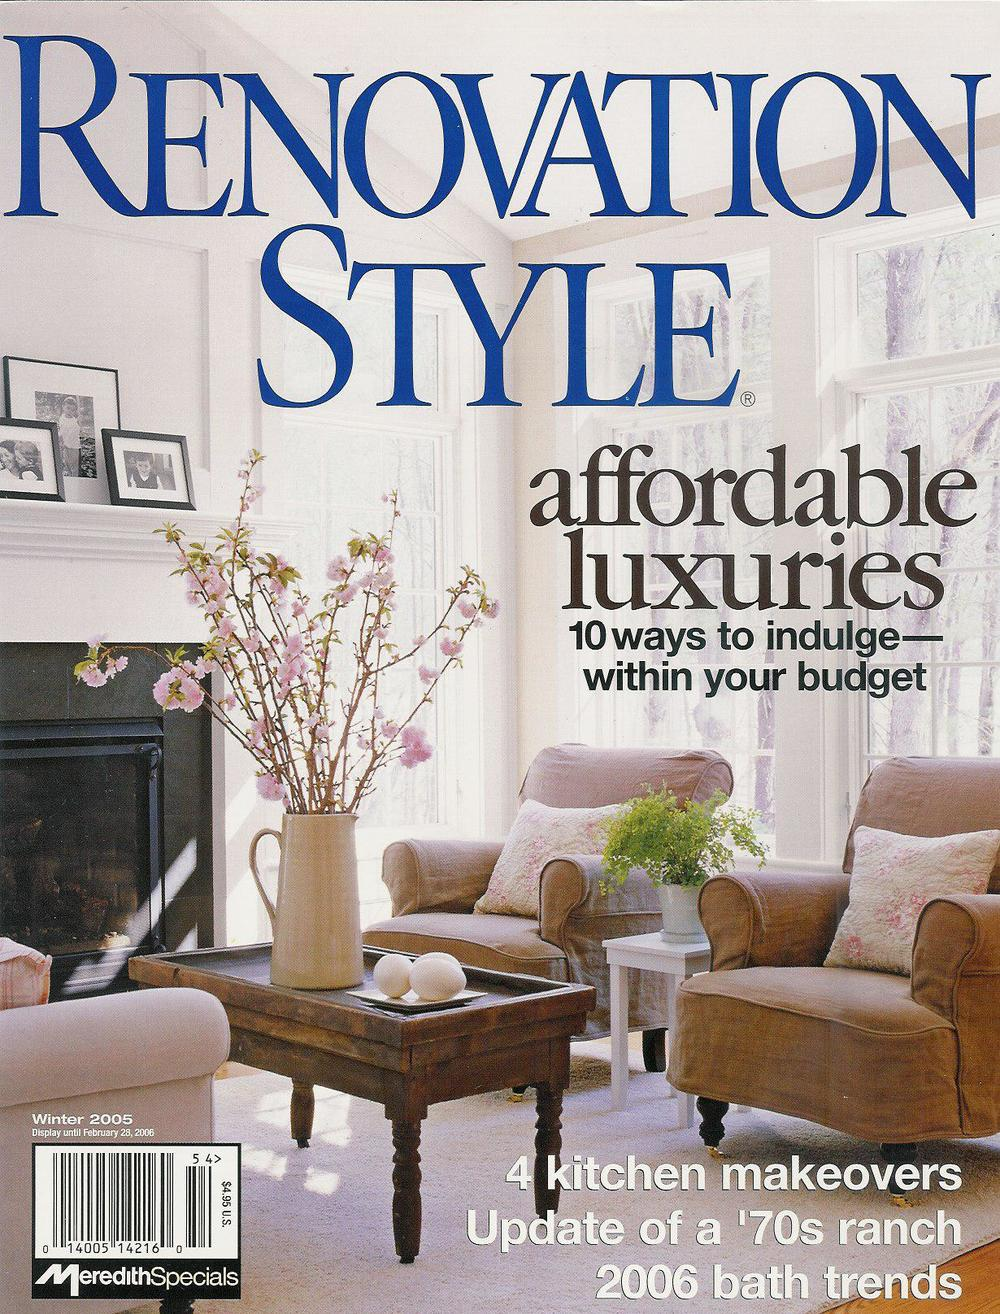 5-Renovation Style Cover #3.jpg